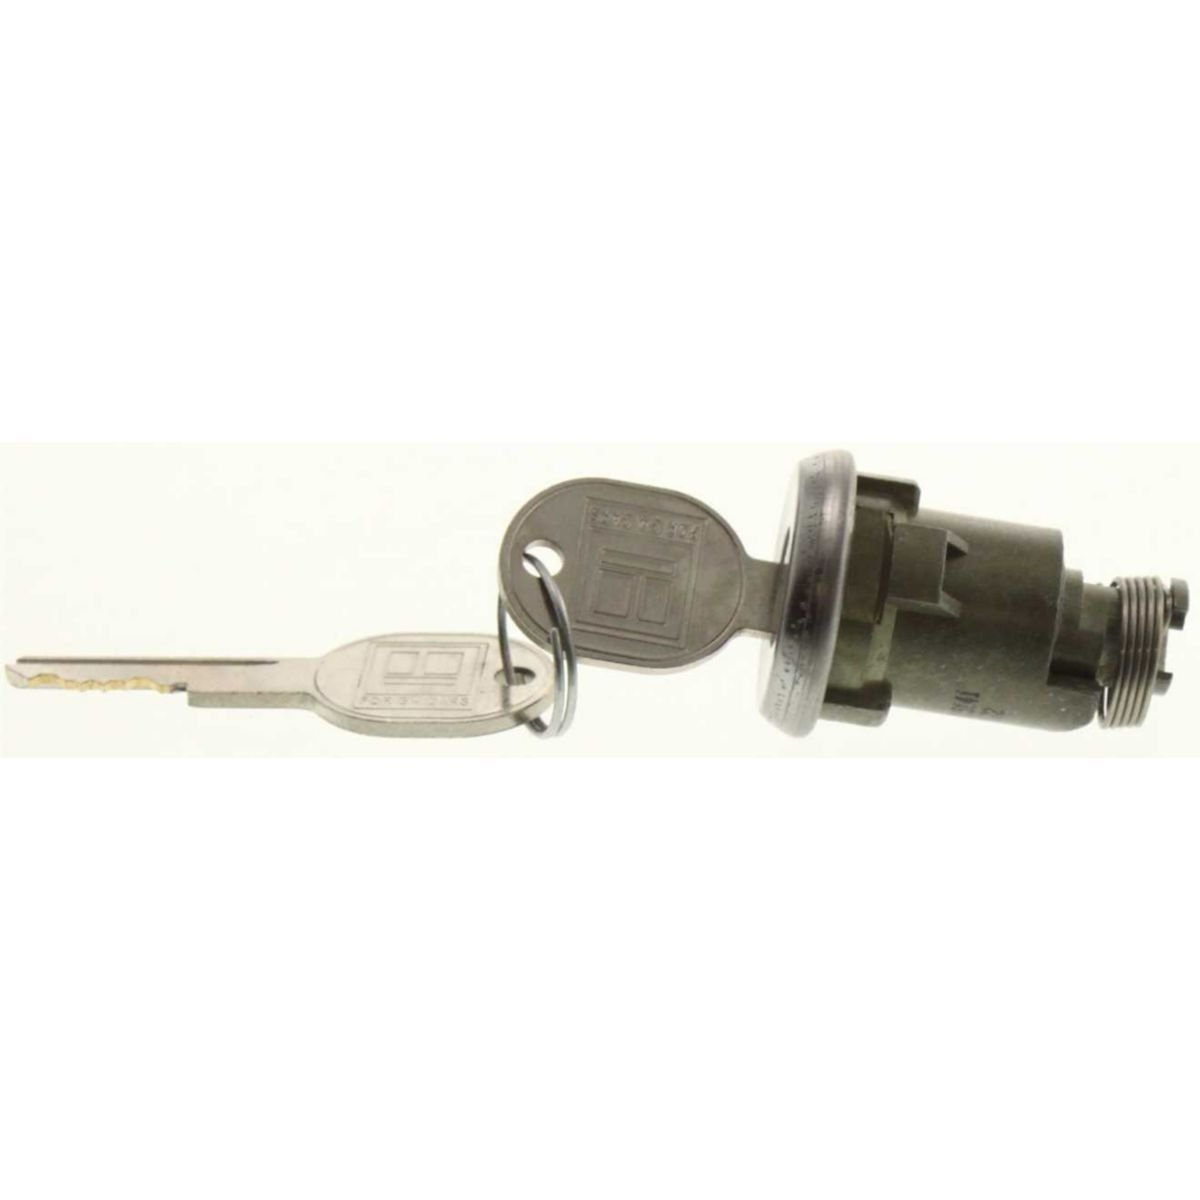 Diften 102-A1624-X01 - New Trunk Lock Chrome Cutlass Chevy Olds Sedan Chevrolet Impala Monte Carlo